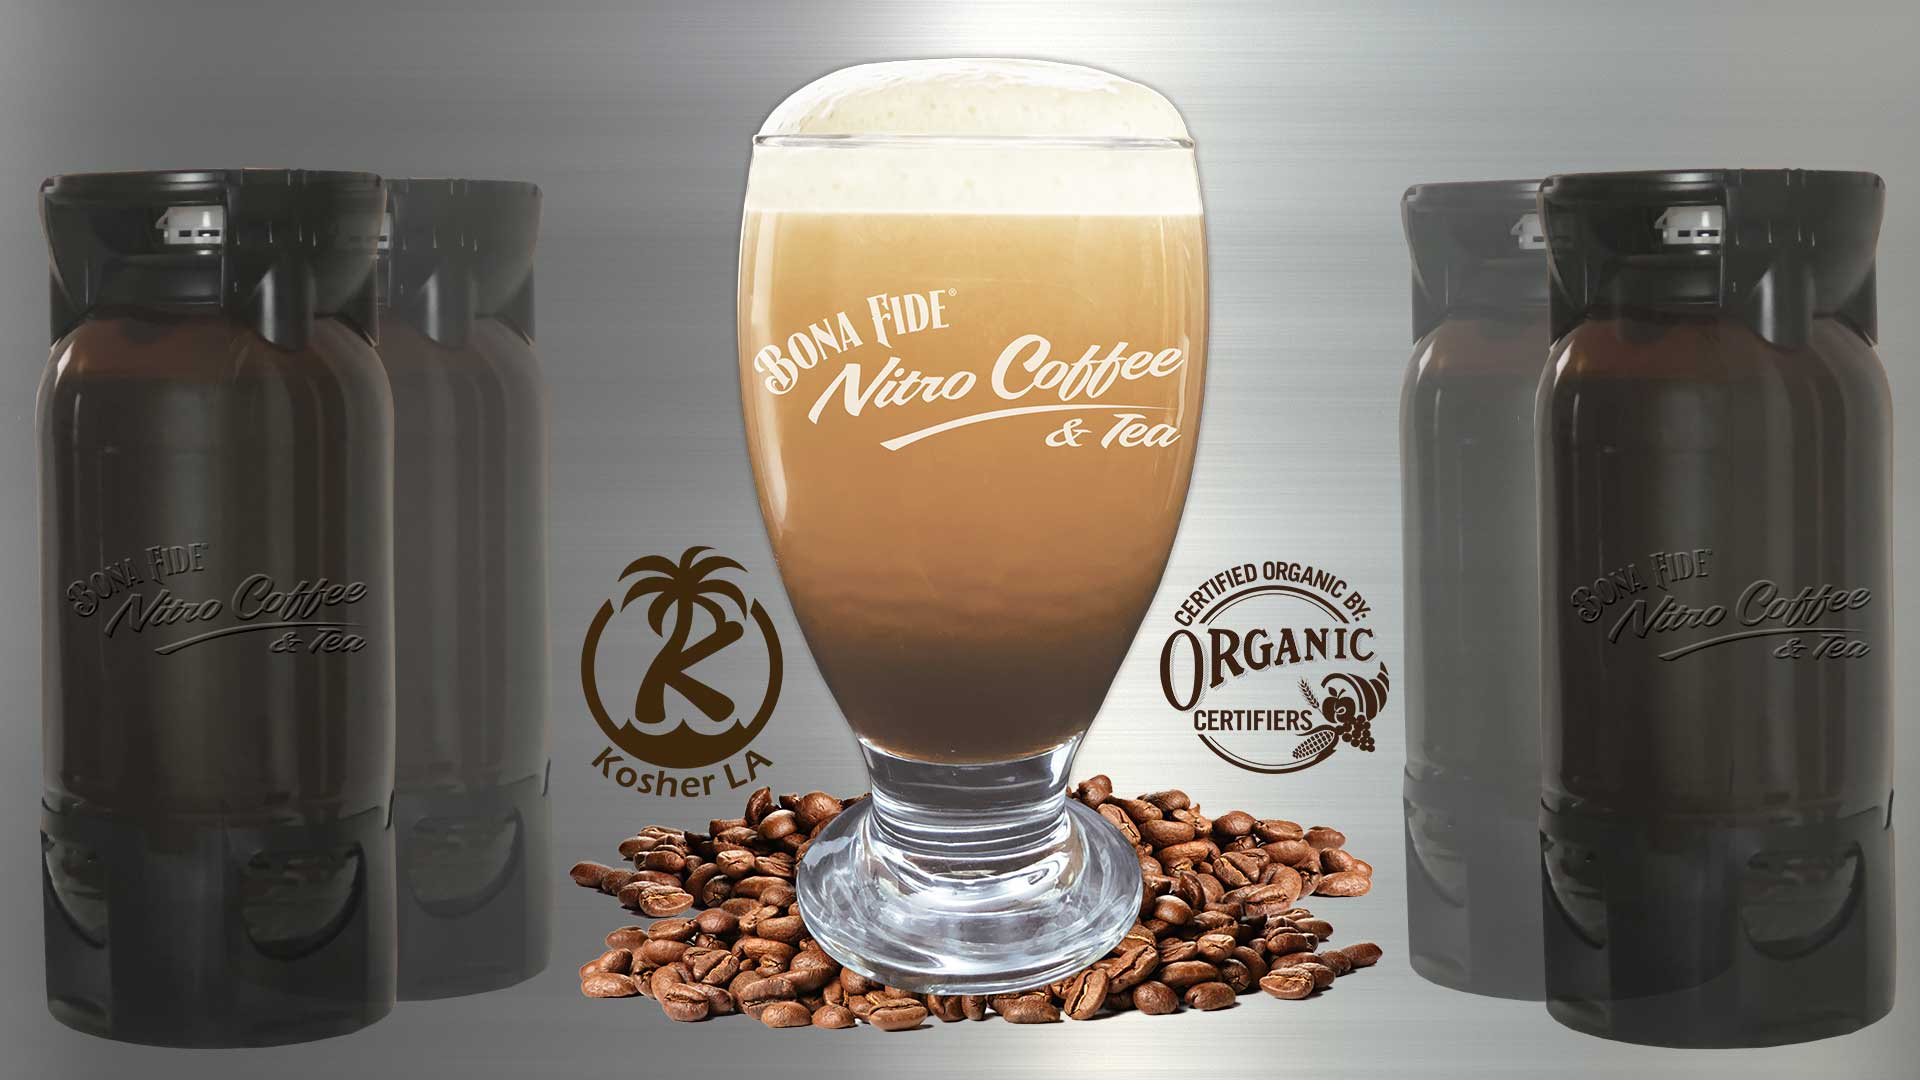 Pet kegs and Nitro coffee in glass produces by Bona Fide